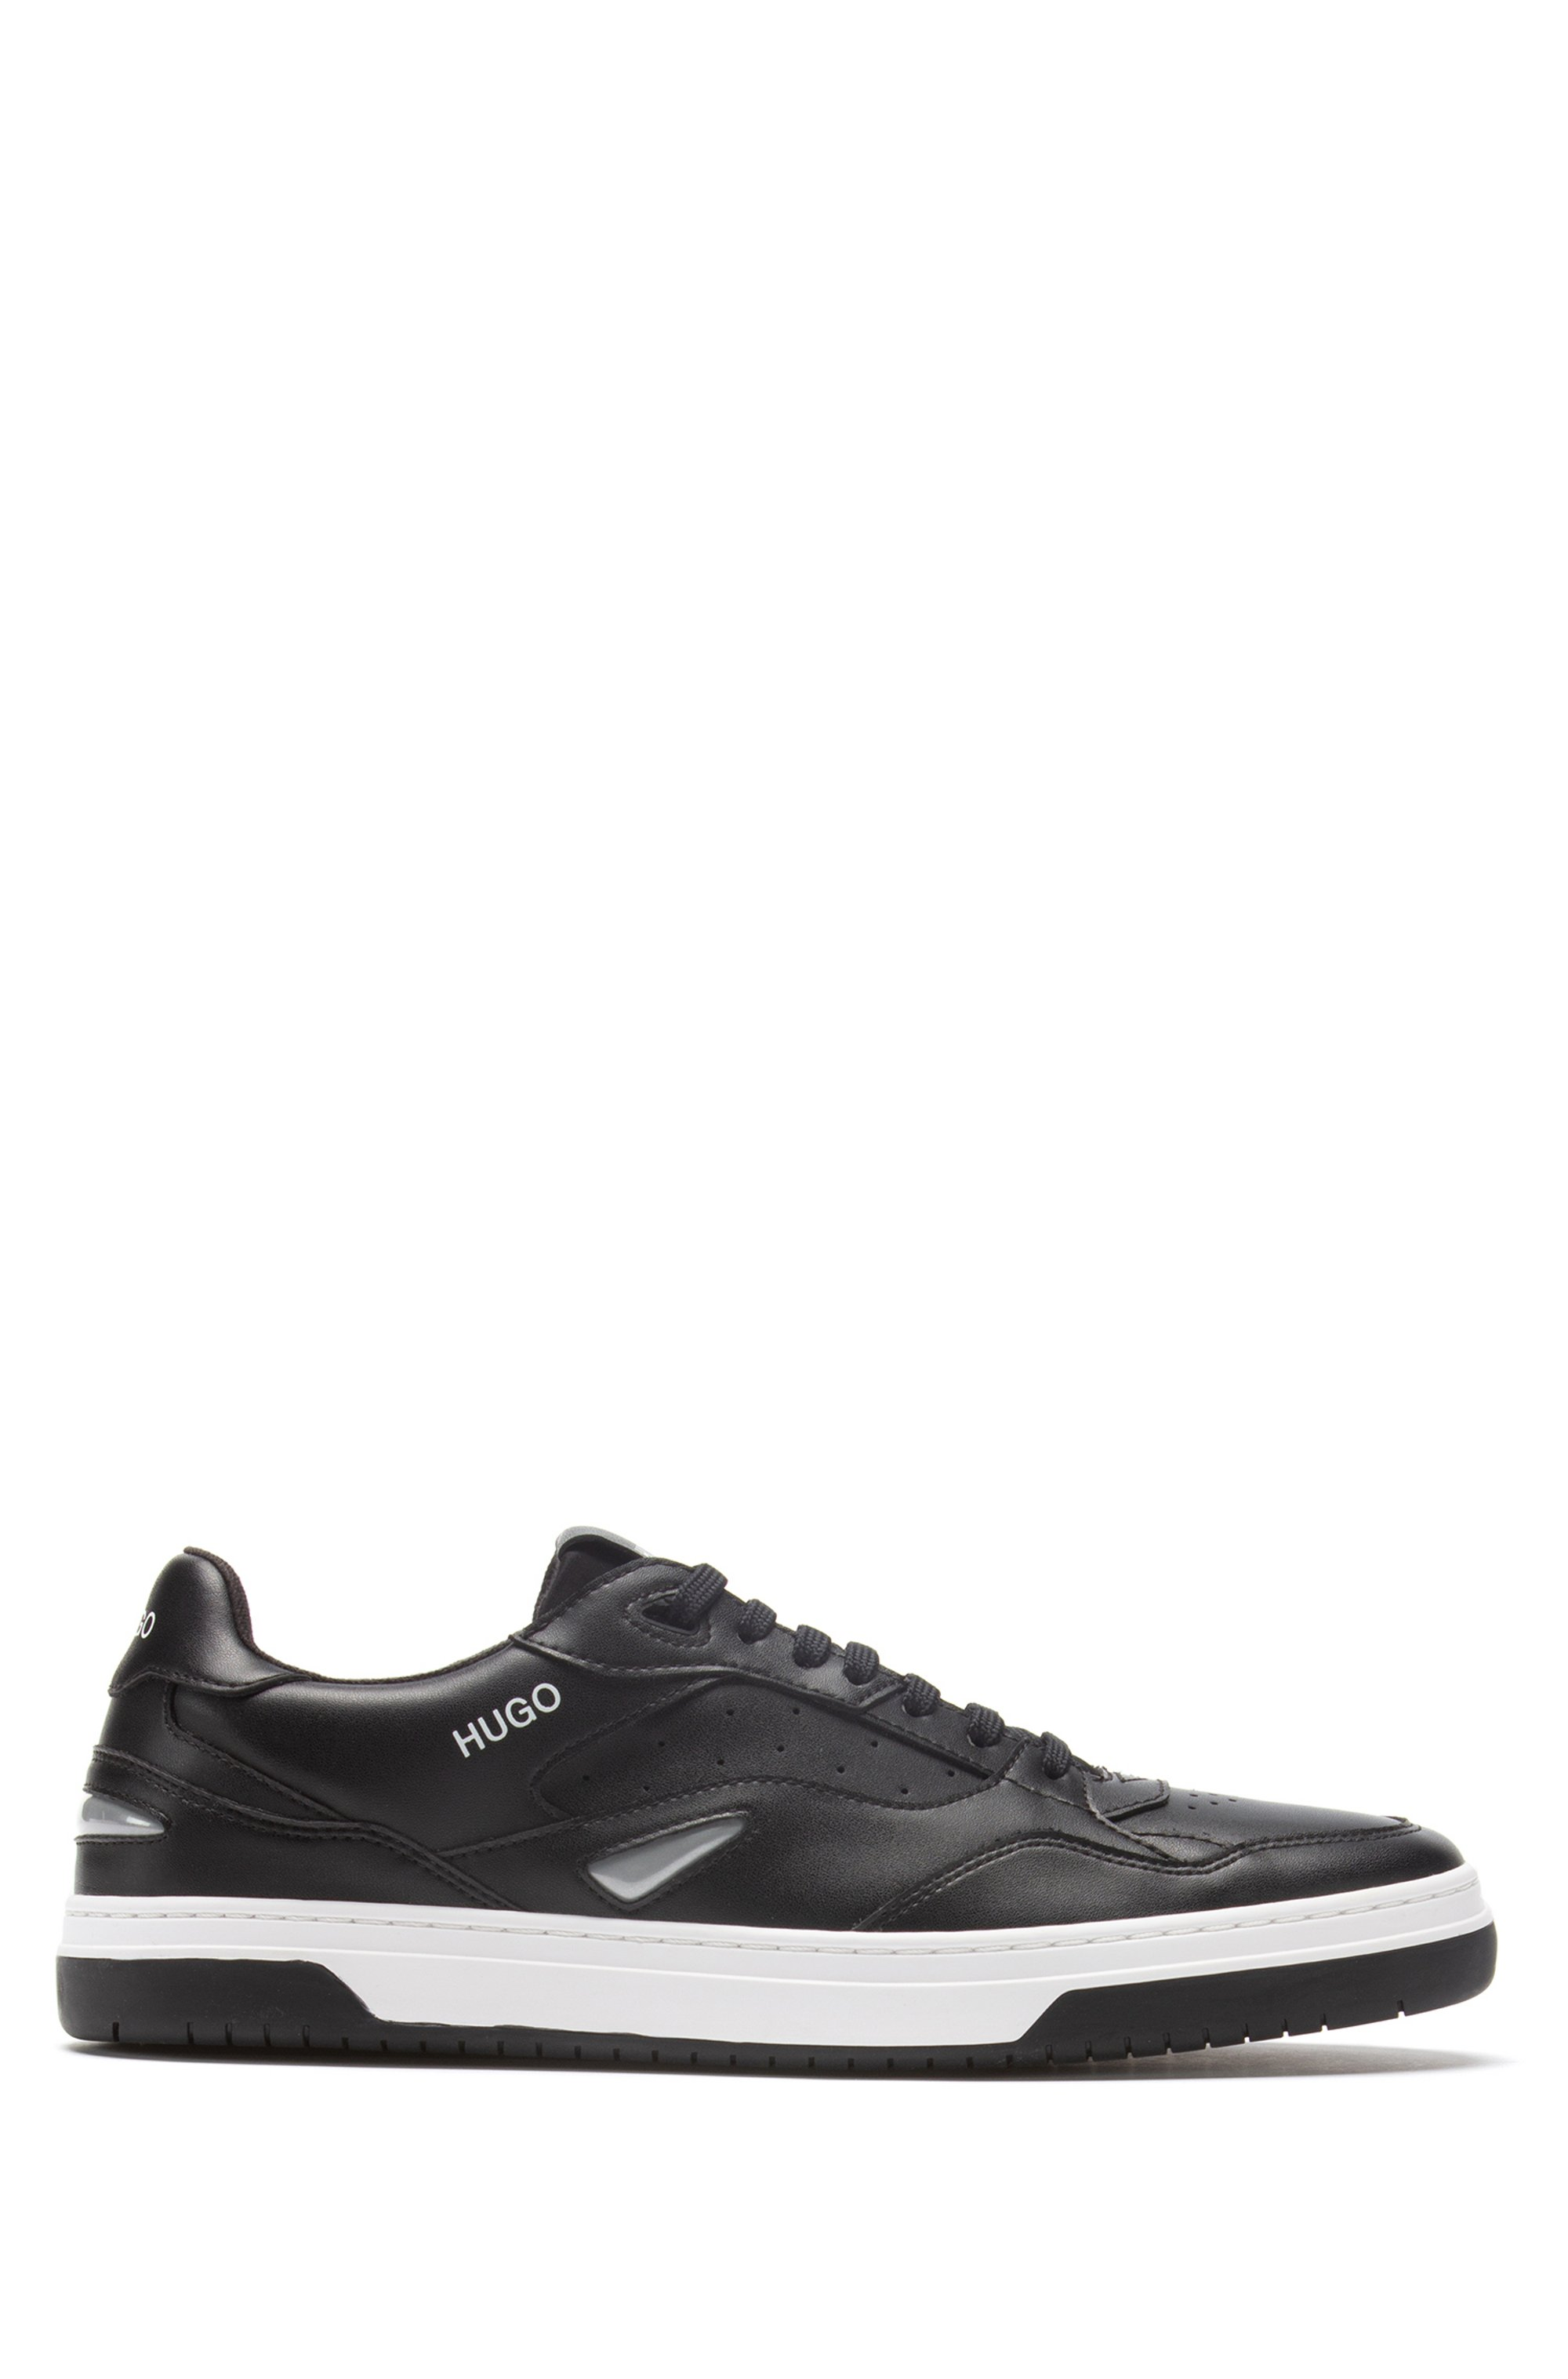 Skate-inspired trainers with bonded-leather uppers, Black